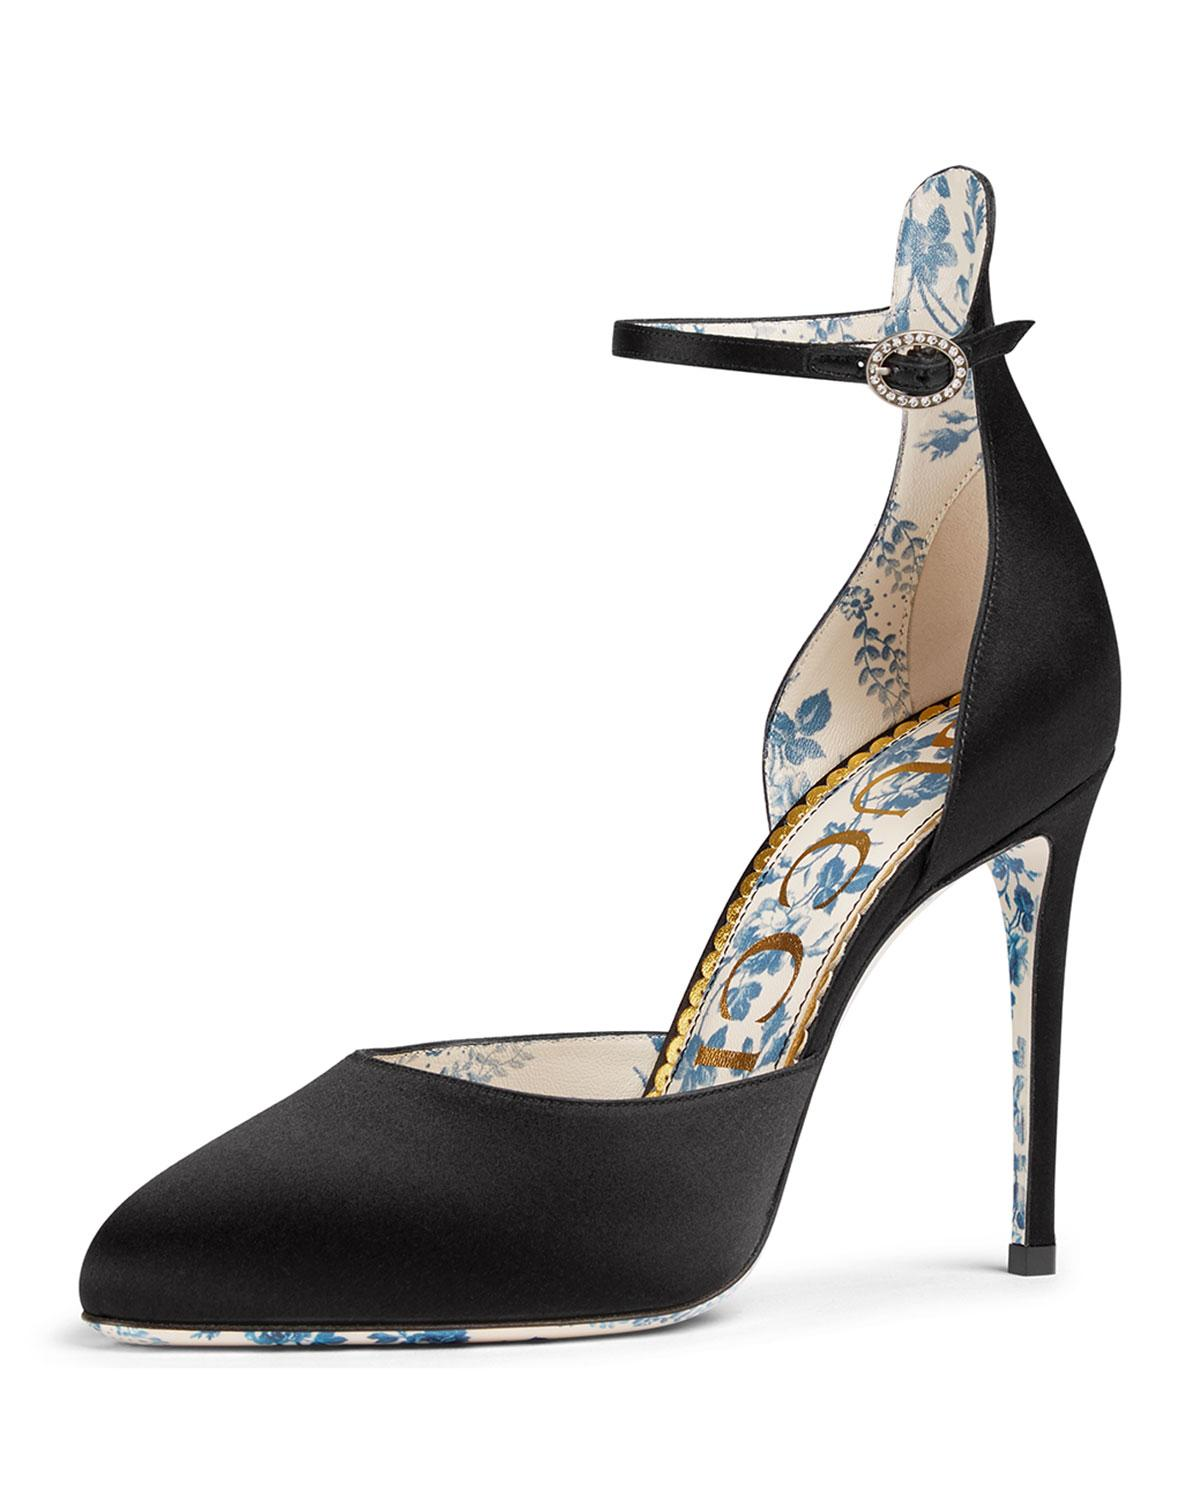 7618654f267a Lyst - Gucci Satin Ankle-strap 105mm D orsay Pumps in Black